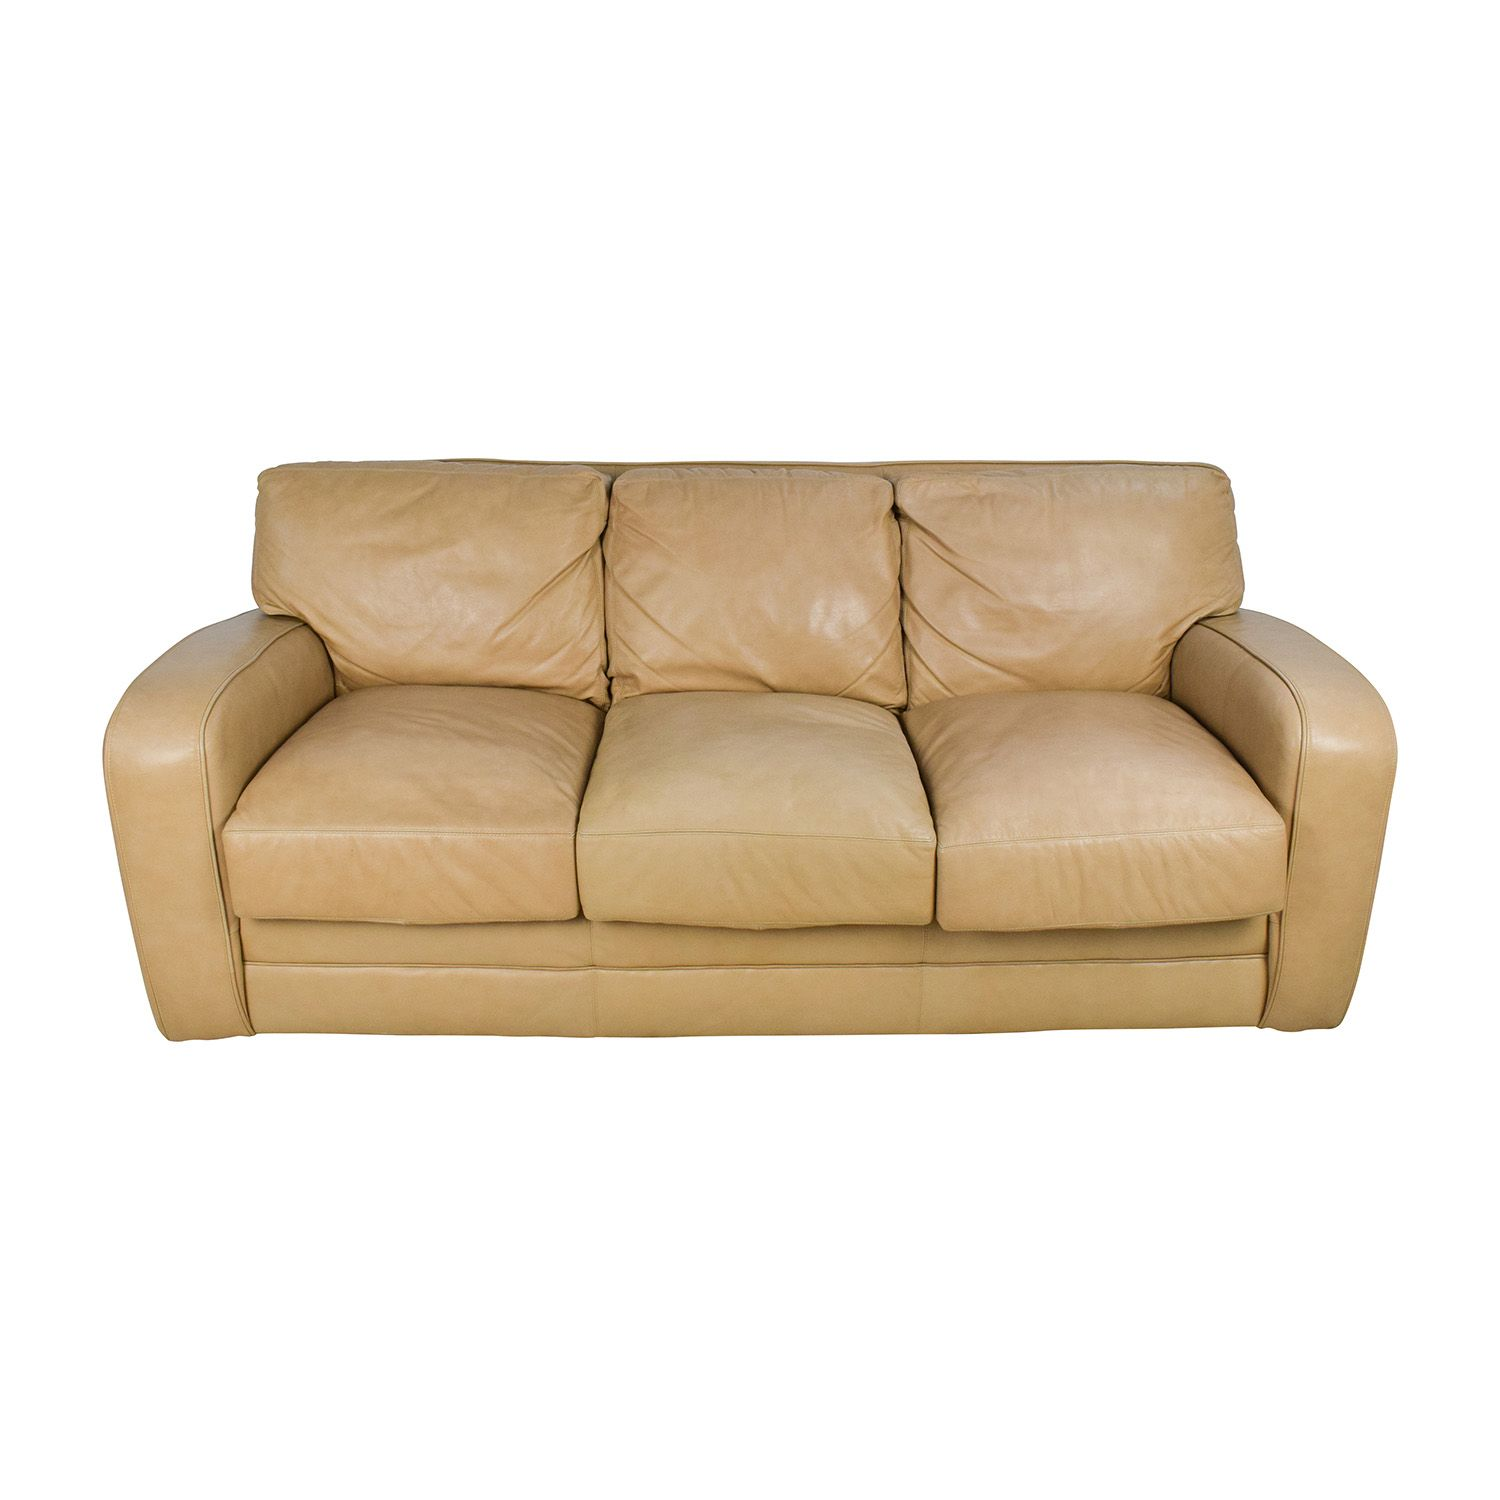 Pin On Brown Couch Modern